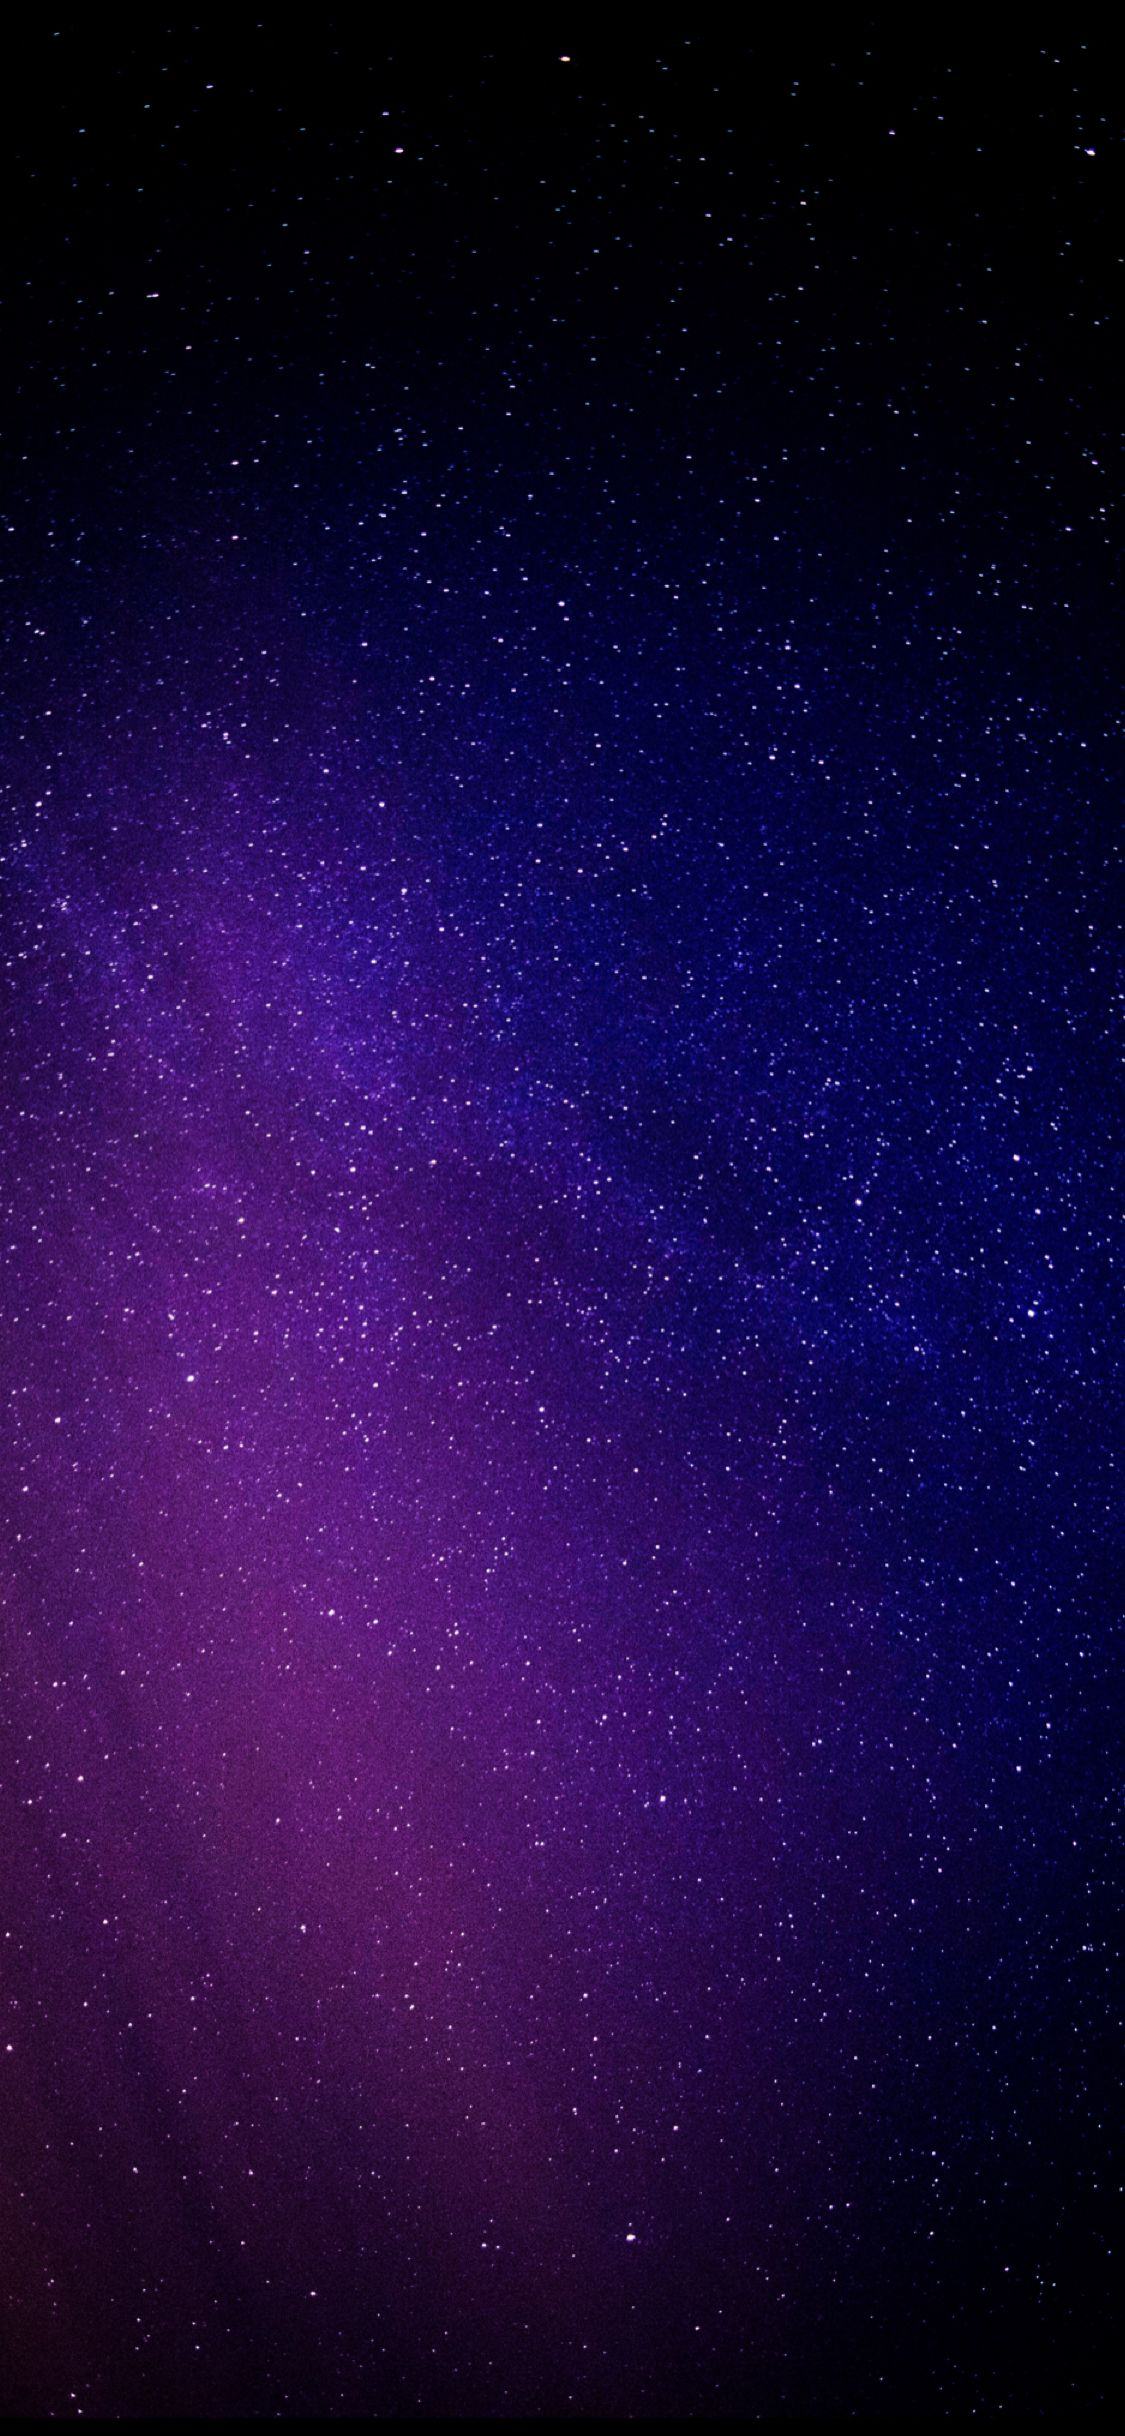 Starry night, purple light Papel de parede do telefone